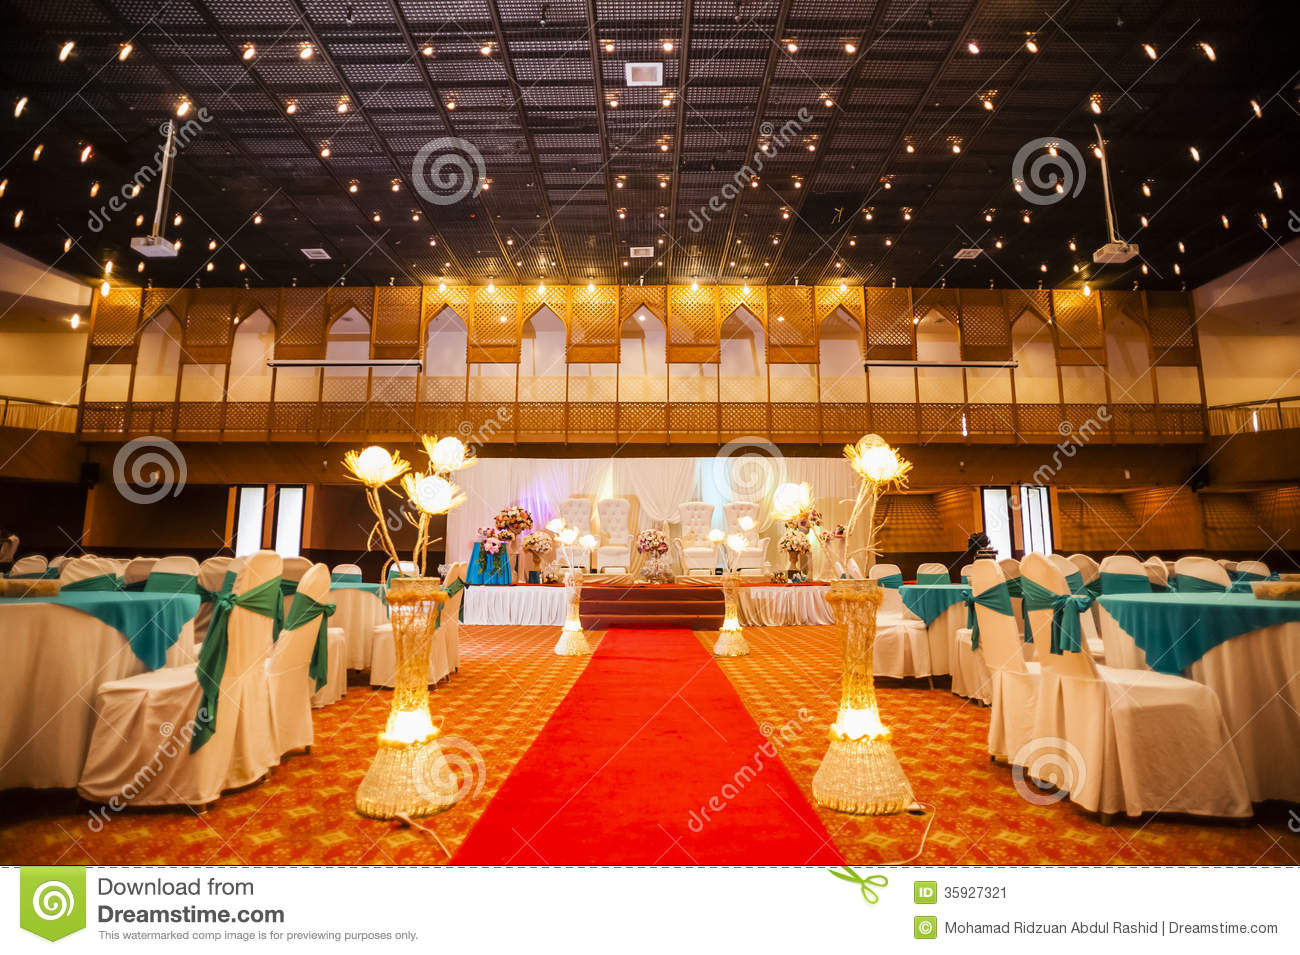 Wedding hall decoration stock image image 35927321 for Decoration image